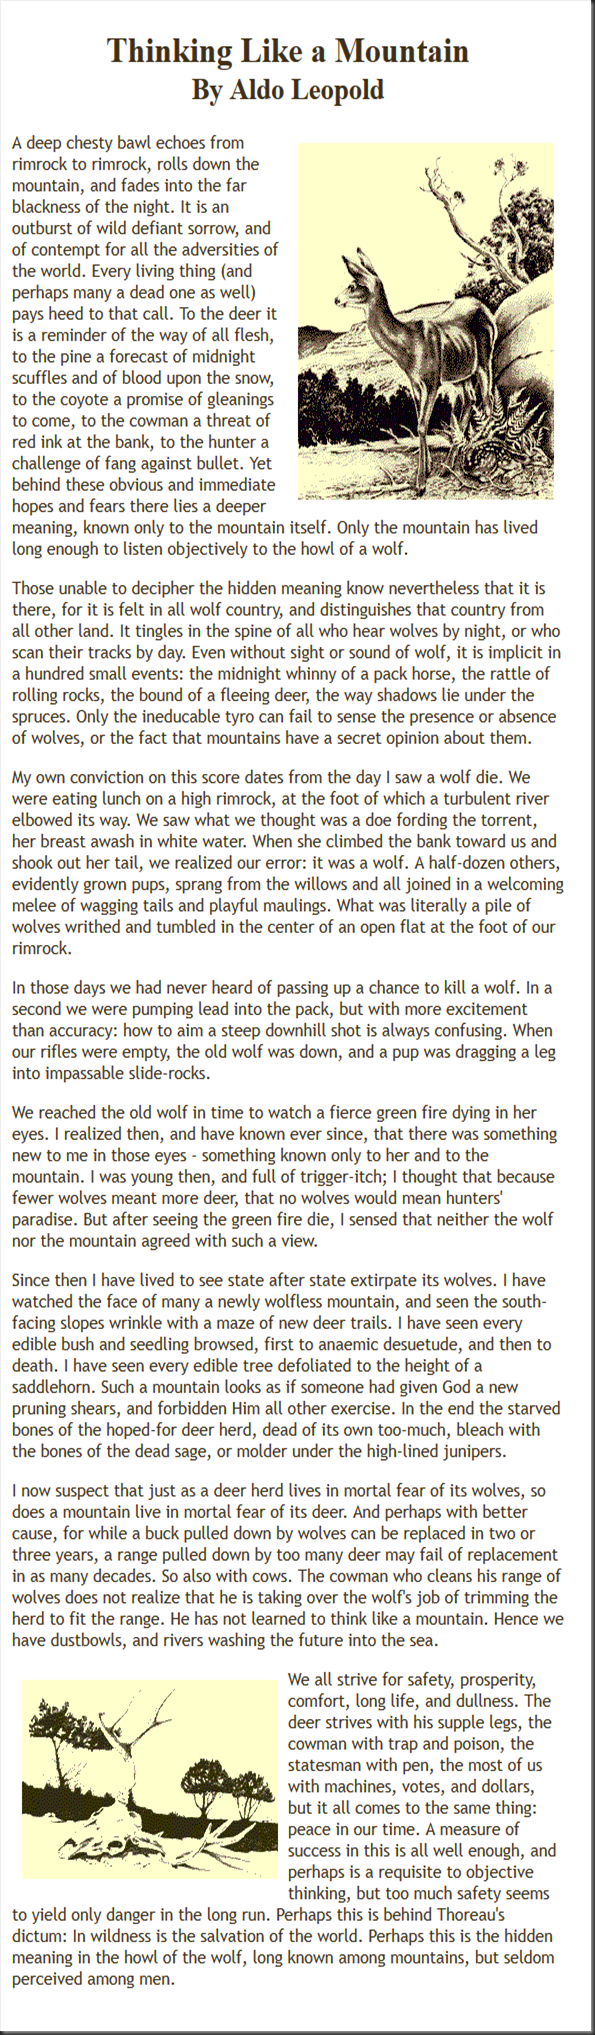 Screenshot_2019-02-19 Thinking Like a Mountain by Aldo Leopold - wolves and deforestation(1)